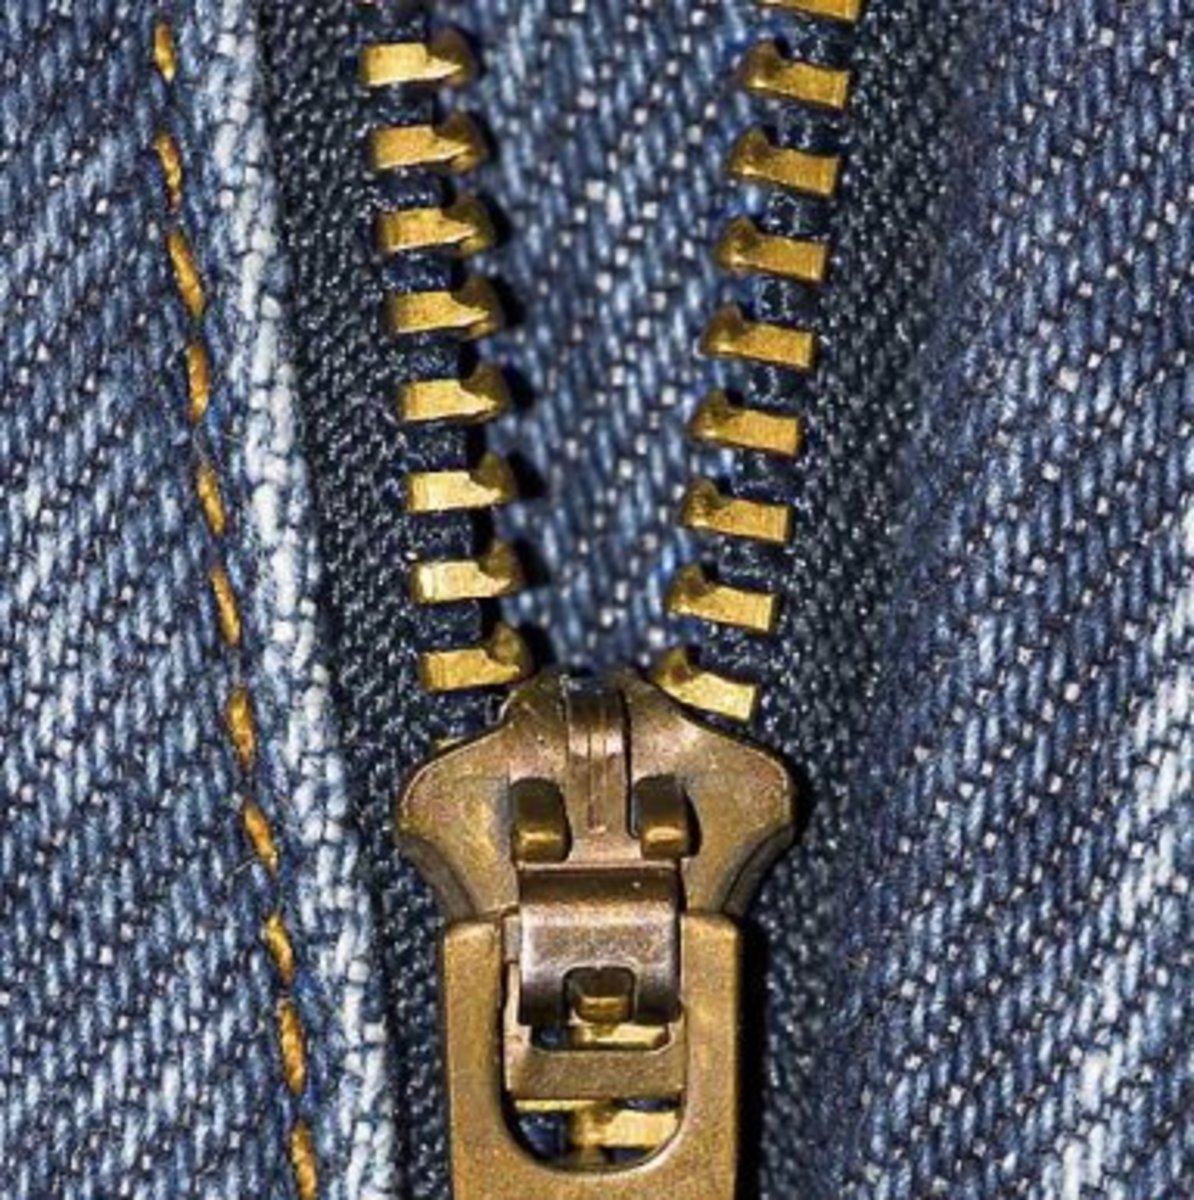 Evolution and History of the Zipper - From Neanderthal Man to Modern Day